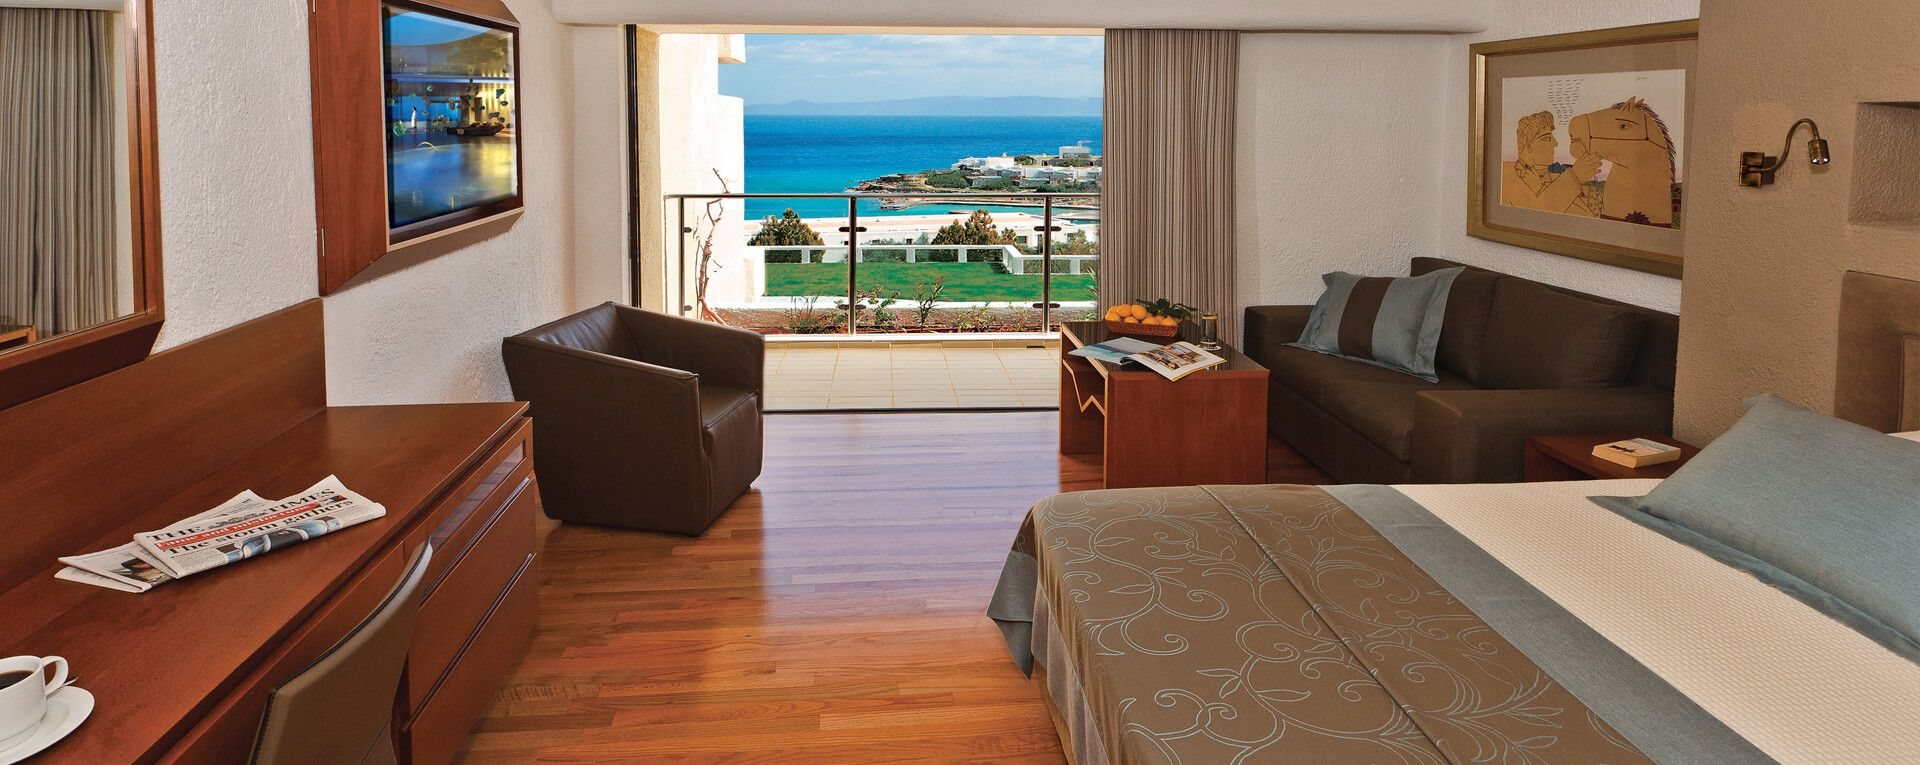 Porto Elounda Golf & Spa